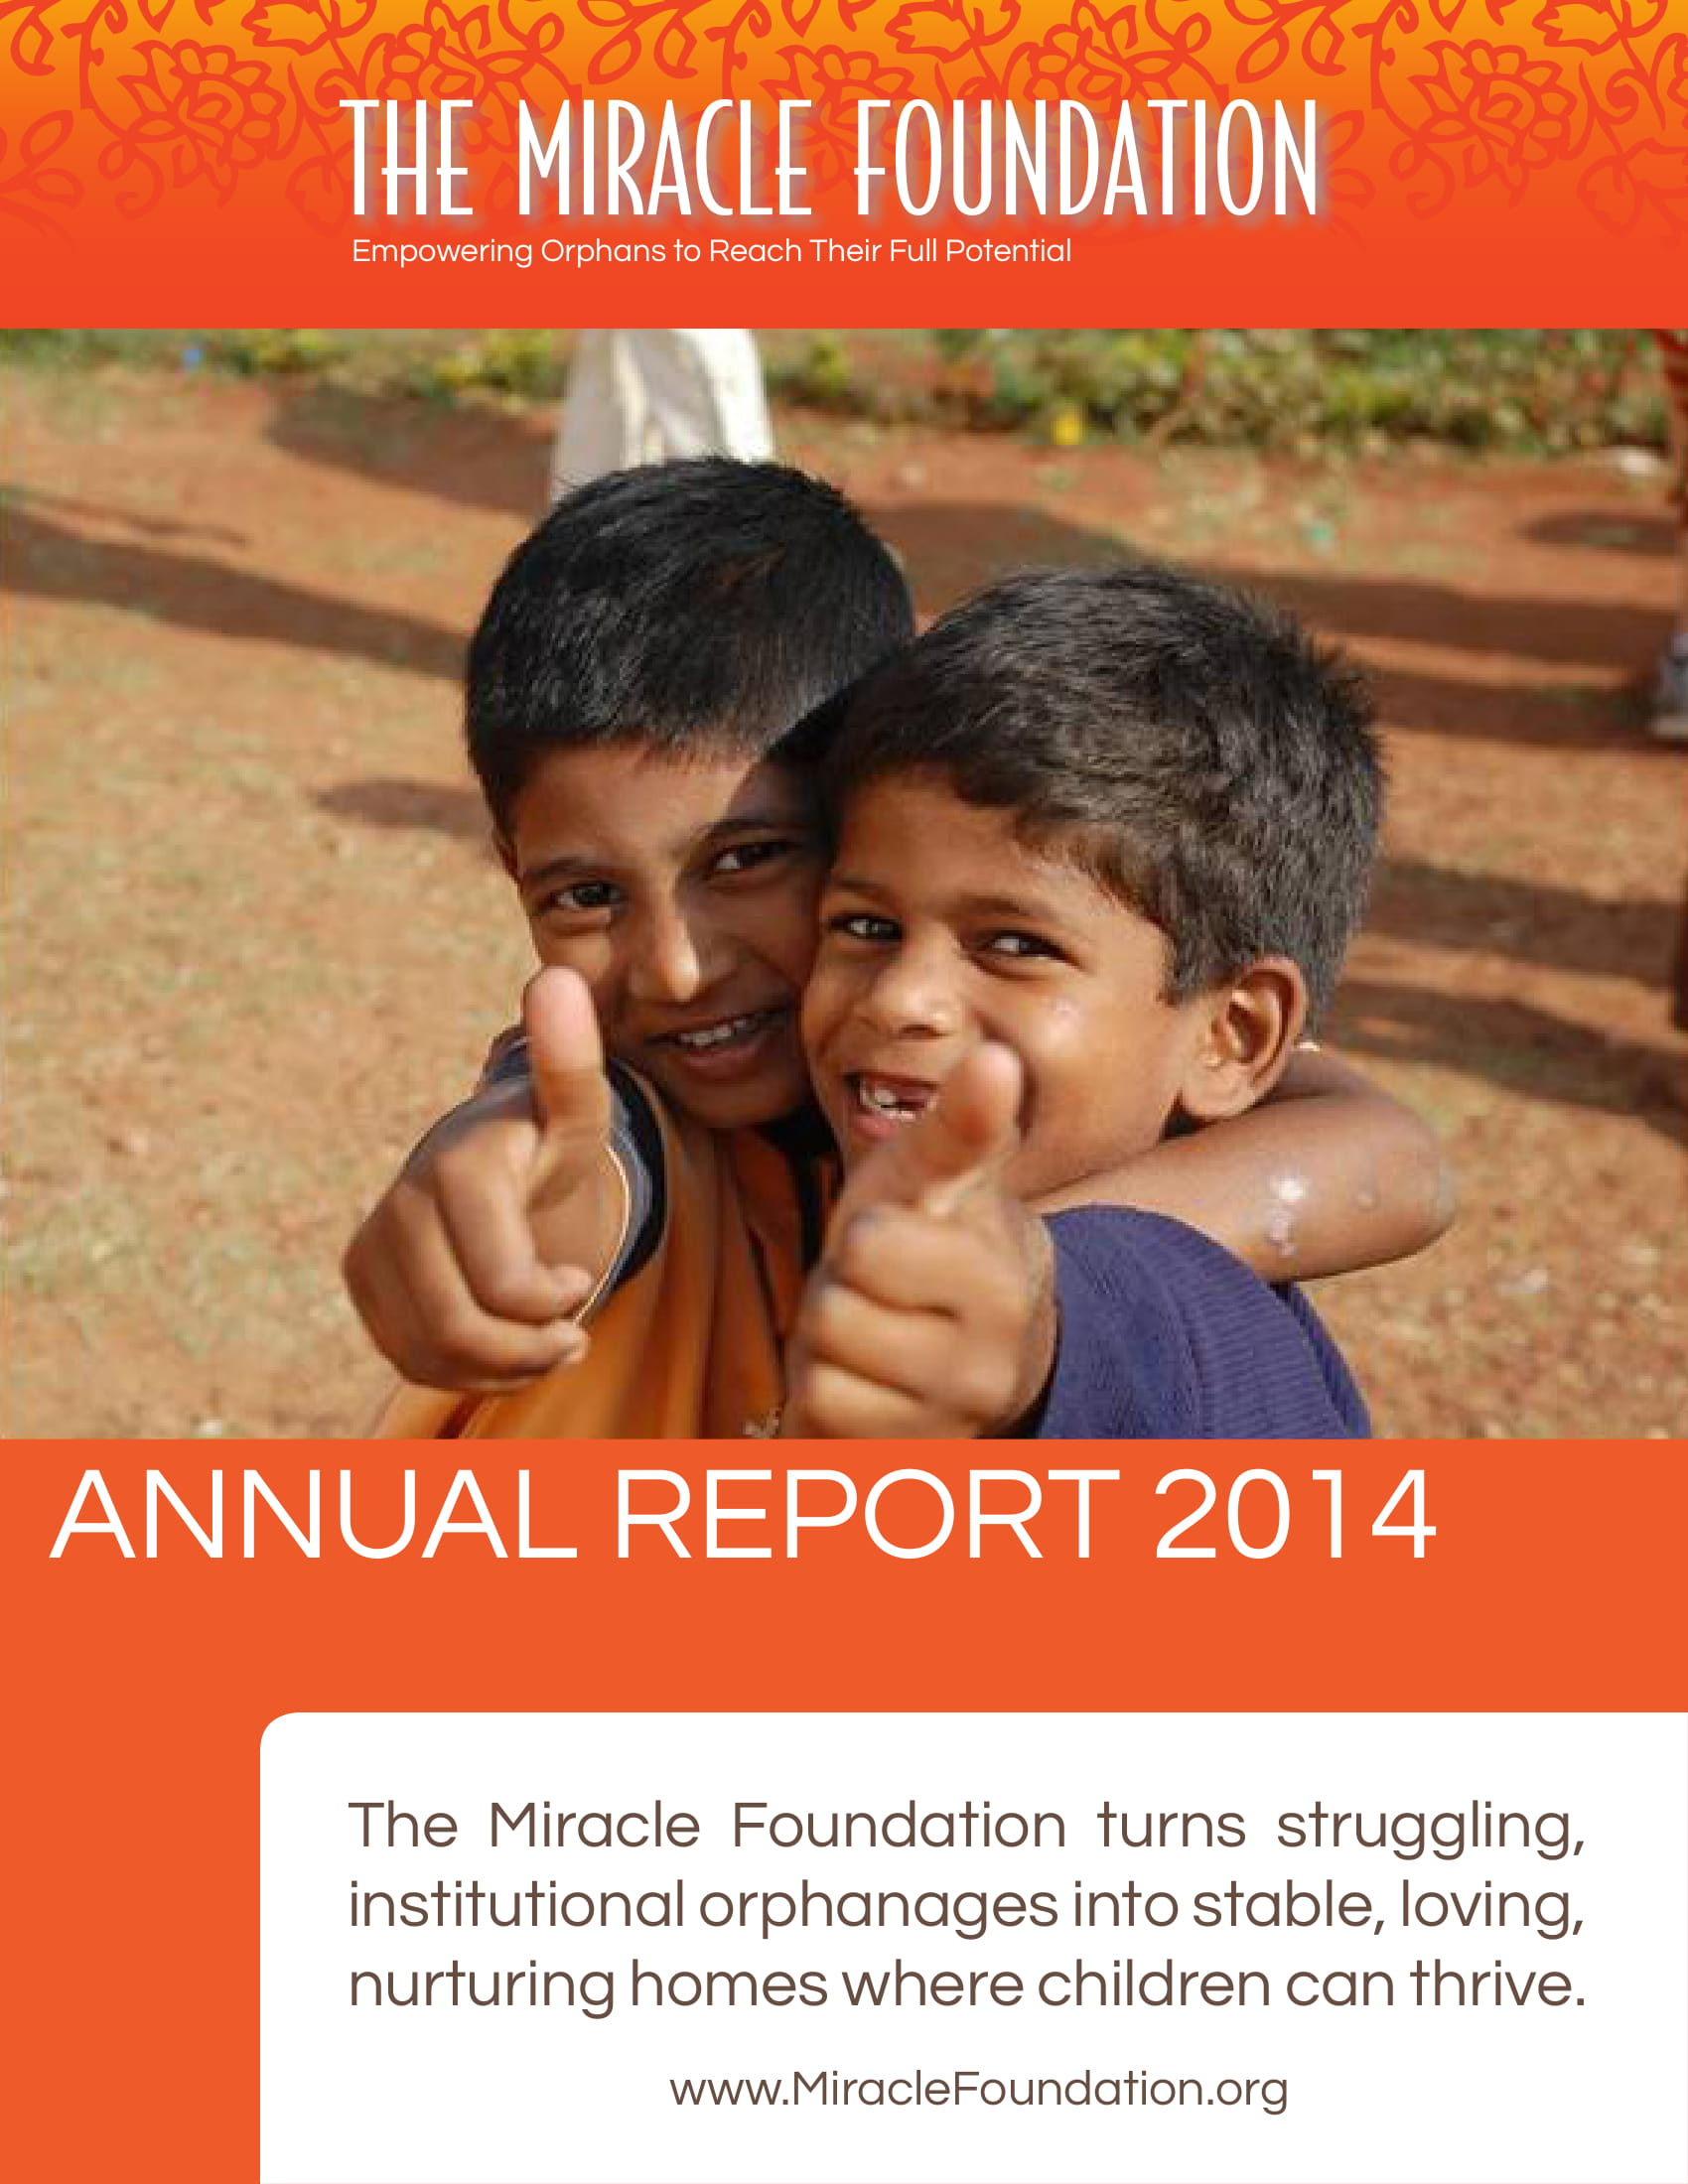 the miracle foundation ngo annual report example